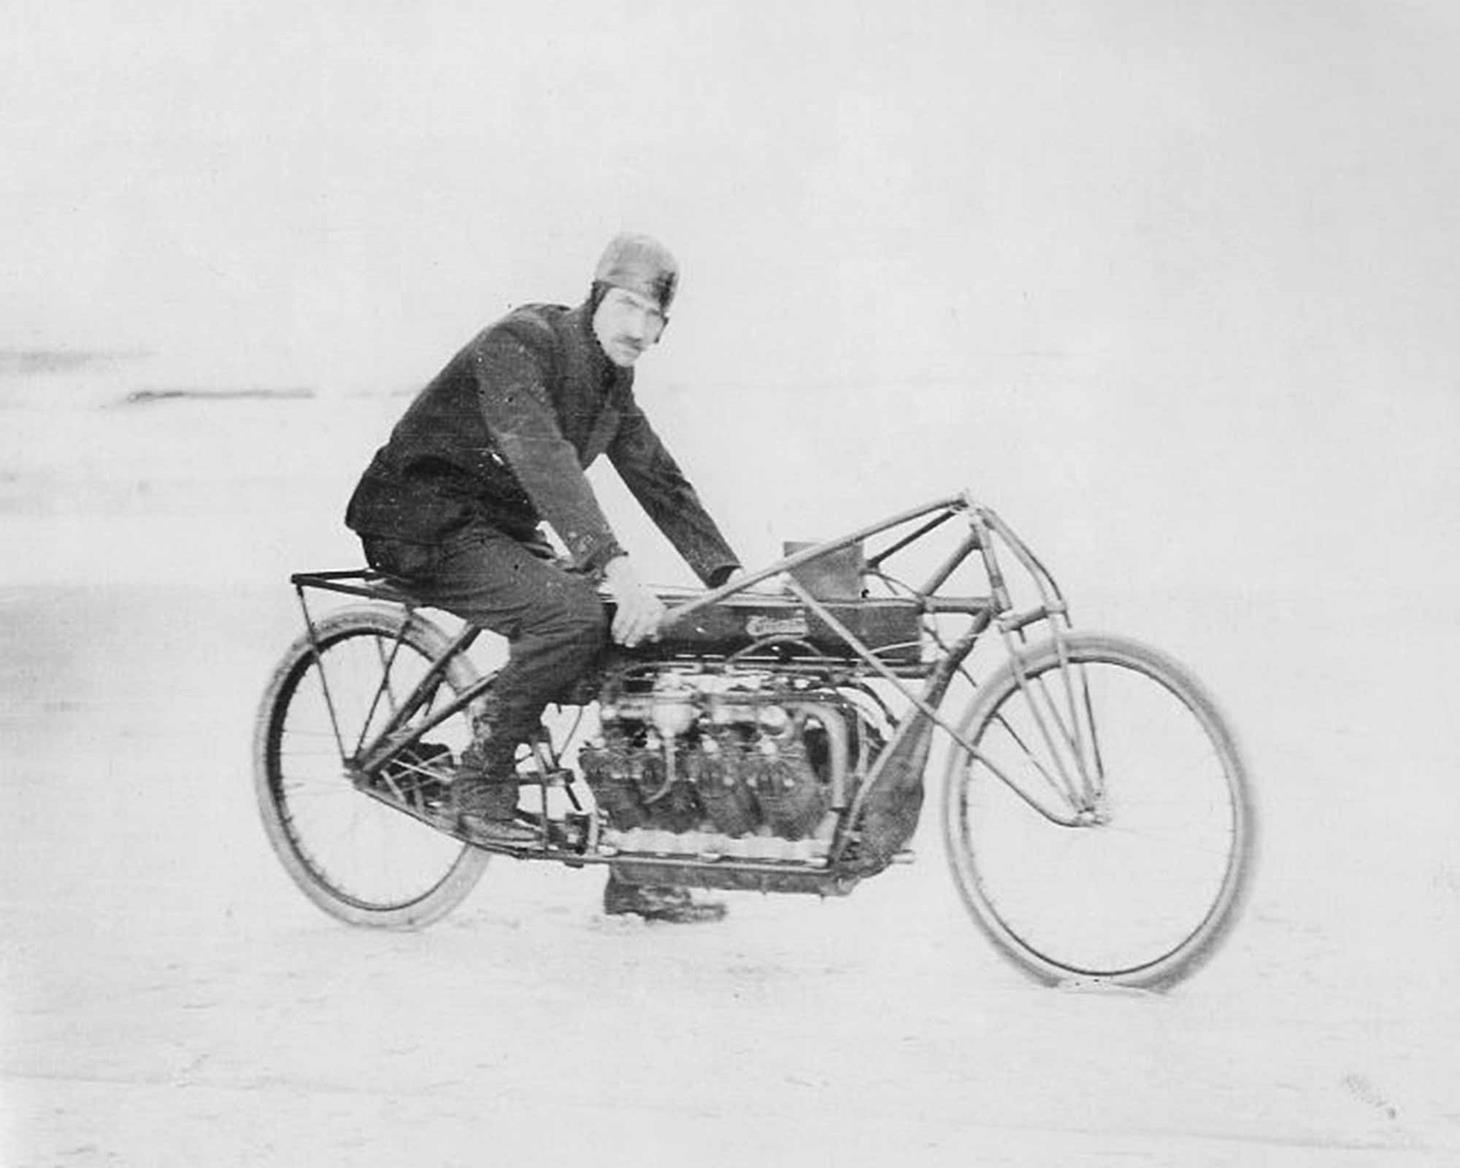 Glenn Curtiss astride his V8 motorbike in 1907